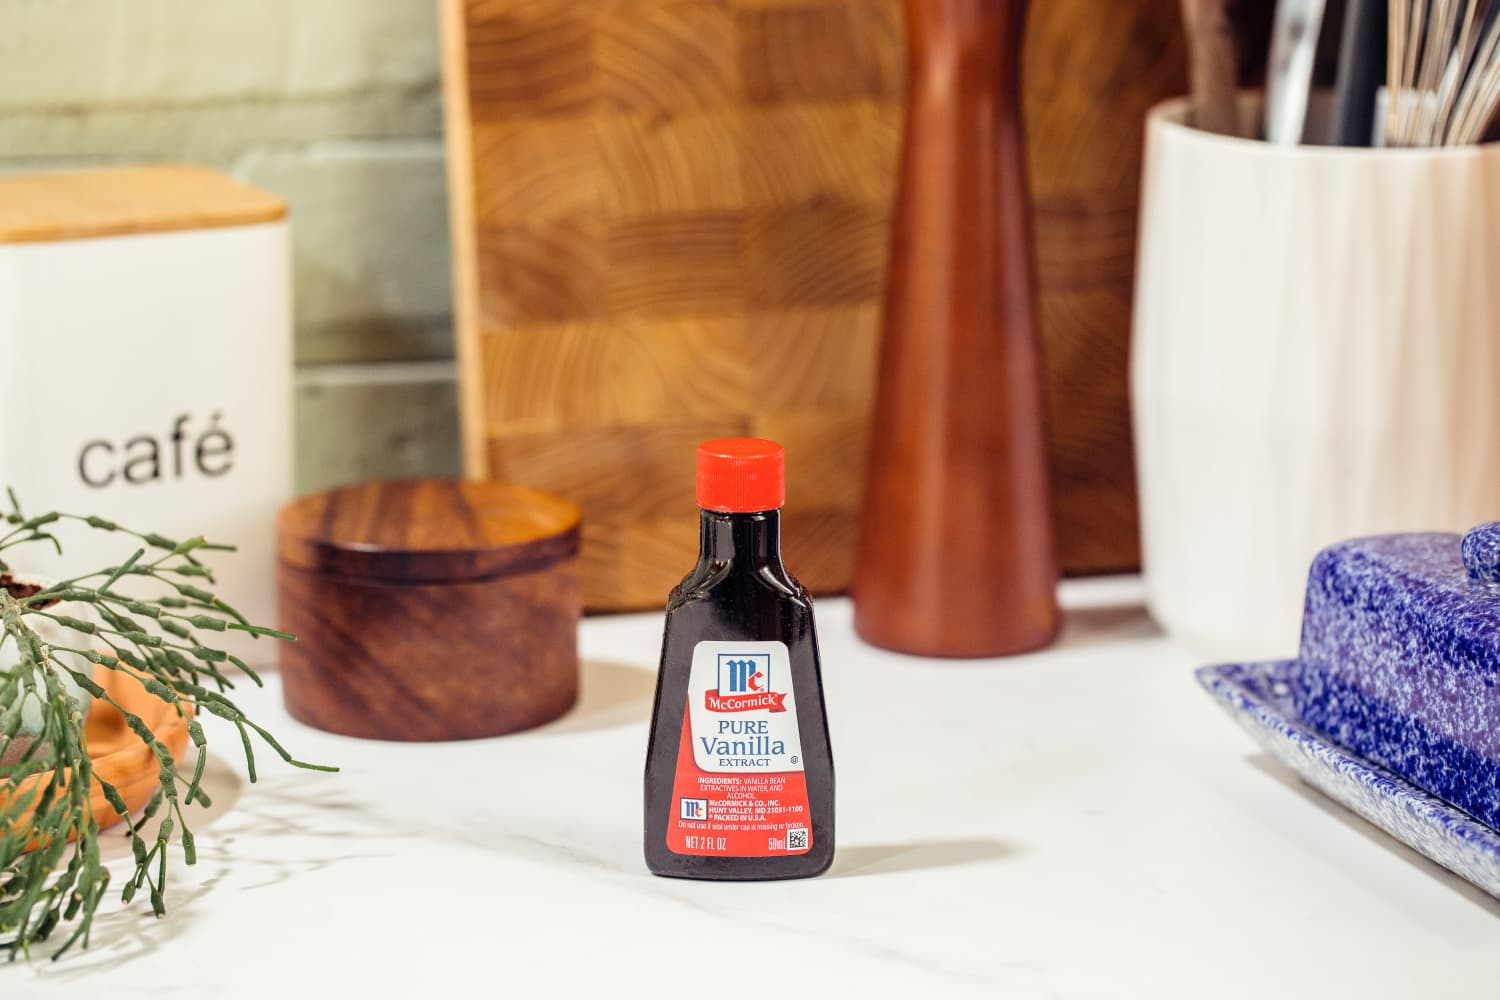 The First Thing You Should Do with a New Bottle of Vanilla Extract